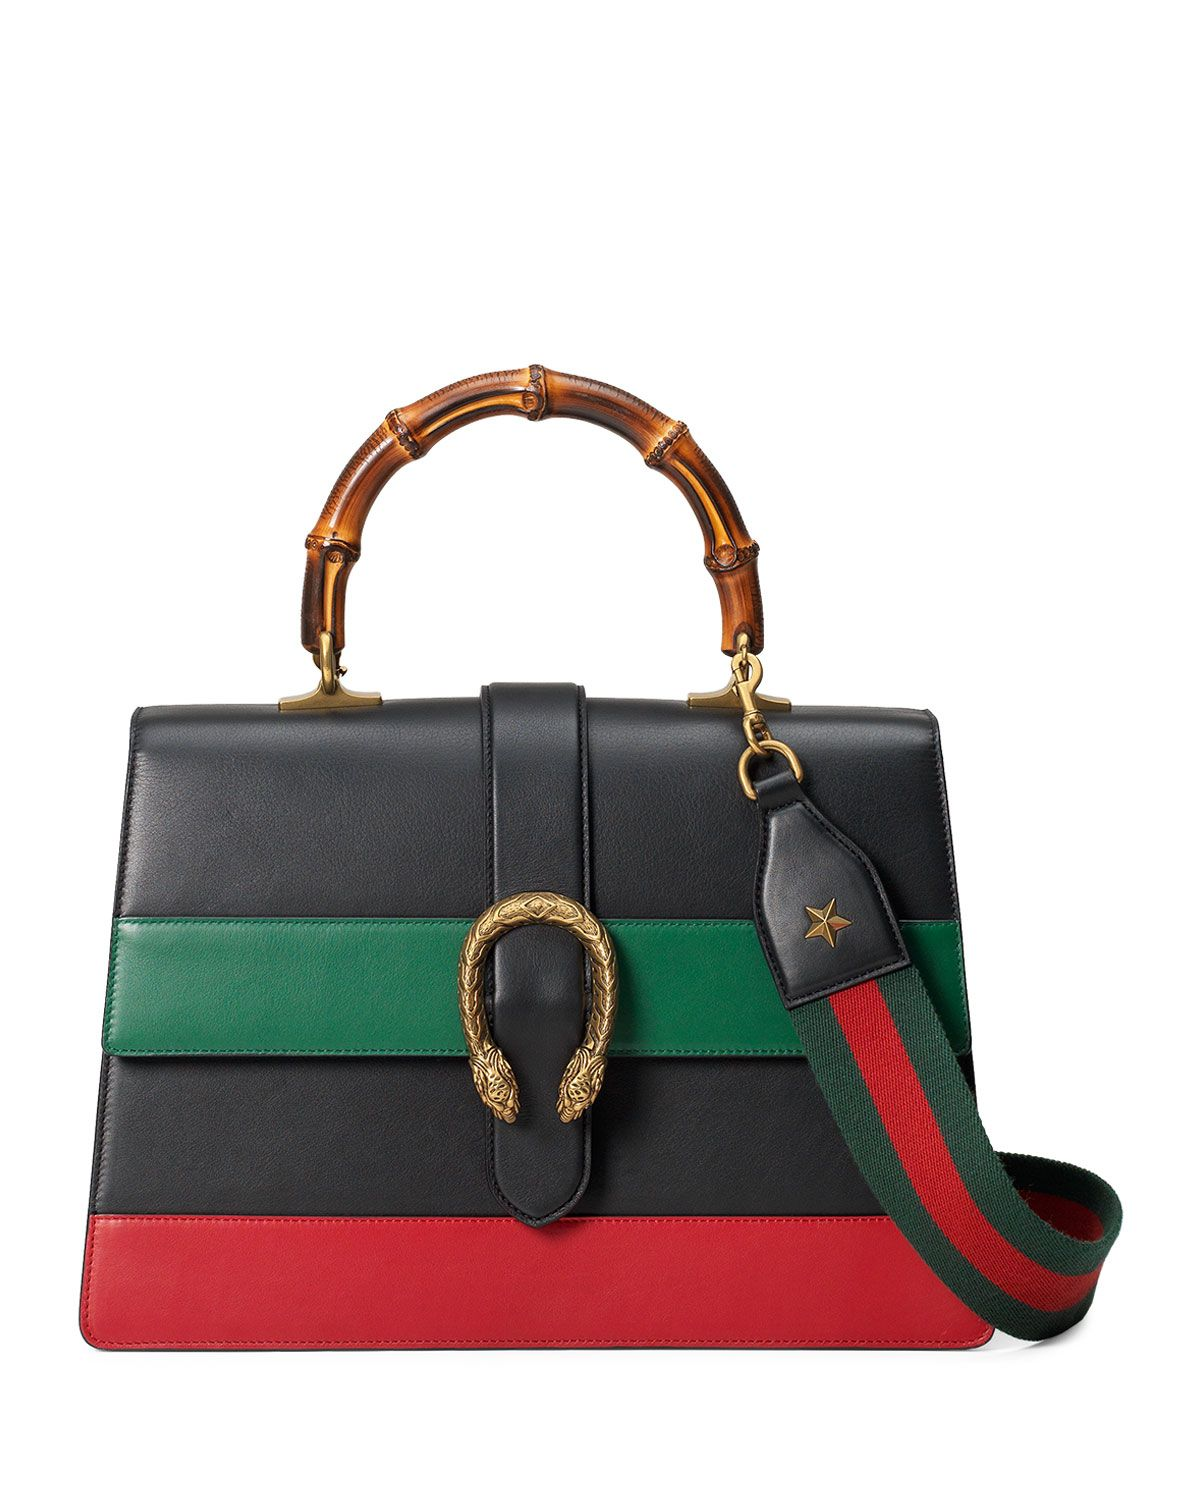 Gucci Dionysus Striped Bamboo Top-Handle Bag, Black Green Red ... 95c75be4e23